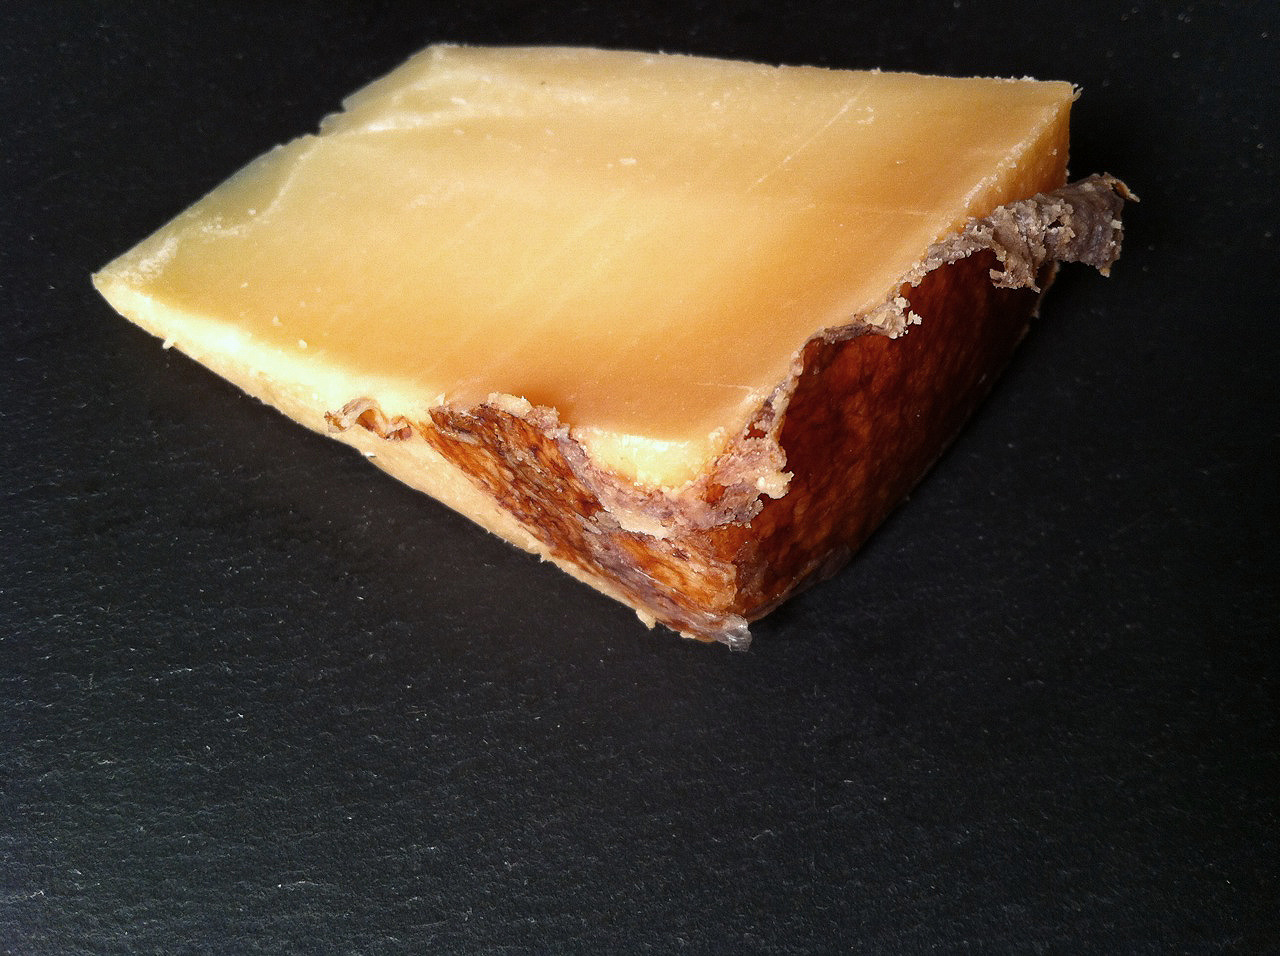 Il Pastore, from Latteria Sociale Santadi, is a brown-waxed sheep's milk cheese made in Santadi,a commune in Sardinia, Italy. The color of the wax evokes the old tradition, from the region, of packing a layer of clay and mud onto the wheels of cheese to protect them, in the days before wax was in ready supply. Made with raw sheep's milk cheese and aged for at least 3 months, this pecorino is similar to Manchego and is an excellent substitute for the Spanish classic. The brown, mottled rind peels back to reveal a firm, golden paste turning to light-caramel brown near the rind. The paste is dry, dense, a bit crumbly, with a light oily sheen. The flavor is salty, nutty and complex, with lanolin, gamey and smokey notes and just a bit of peppery bite. On a whim, I used the Il Pastore in a 3-green Tart recipe ( spinach, chard and kale), mixed with Bulgarian Feta, which worked out beautifully, the Feta, with it's fresh lipase bite, complimenting the aged Il Pastore nicely. Purchased at Stinky Brooklyn.